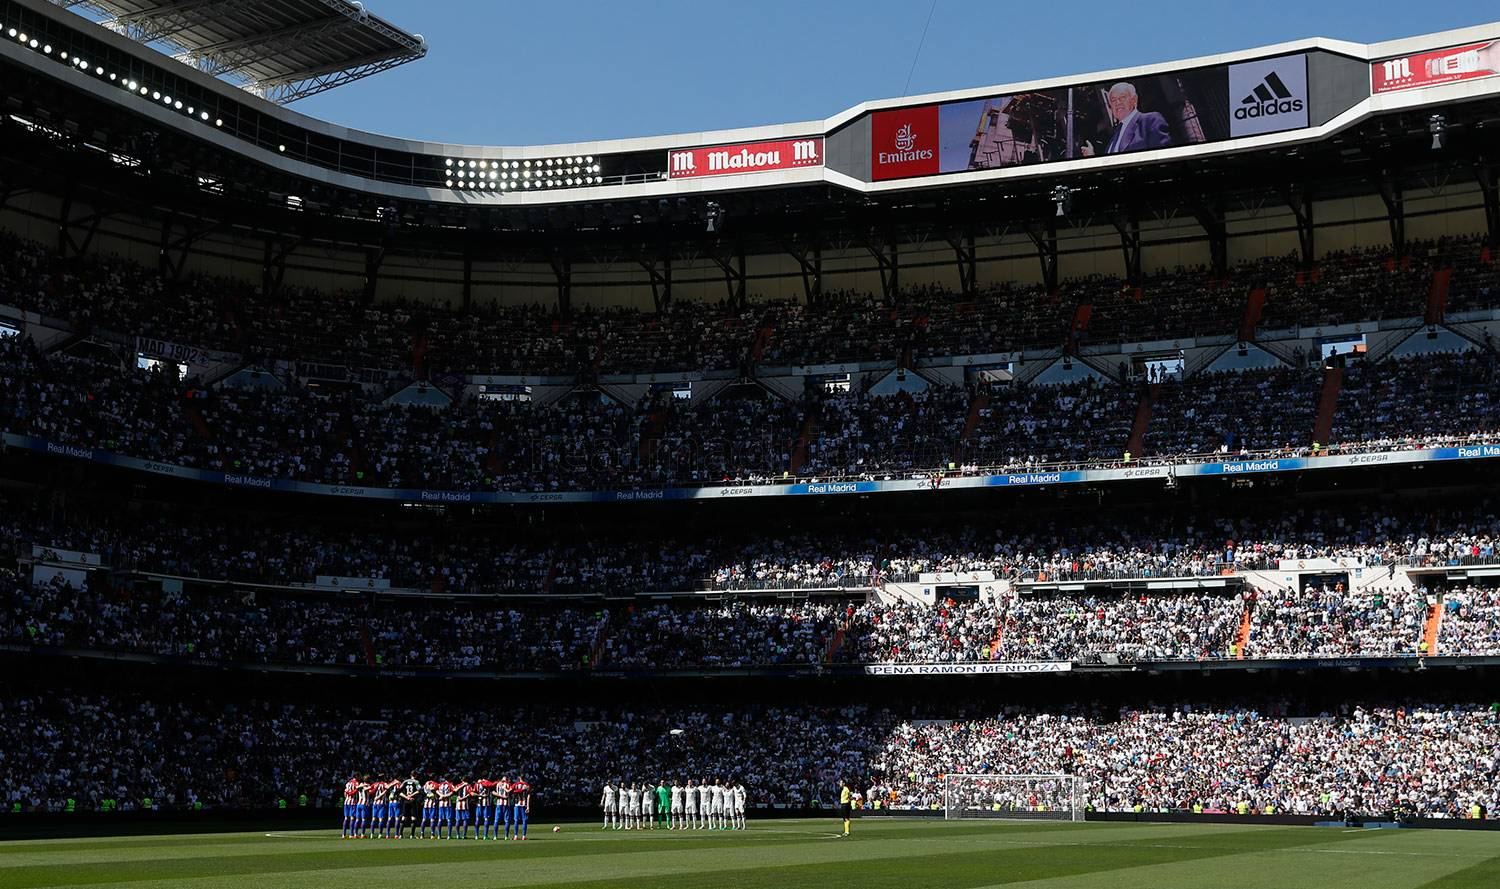 Real Madrid - Real Madrid - Atlético de Madrid - 08-04-2017